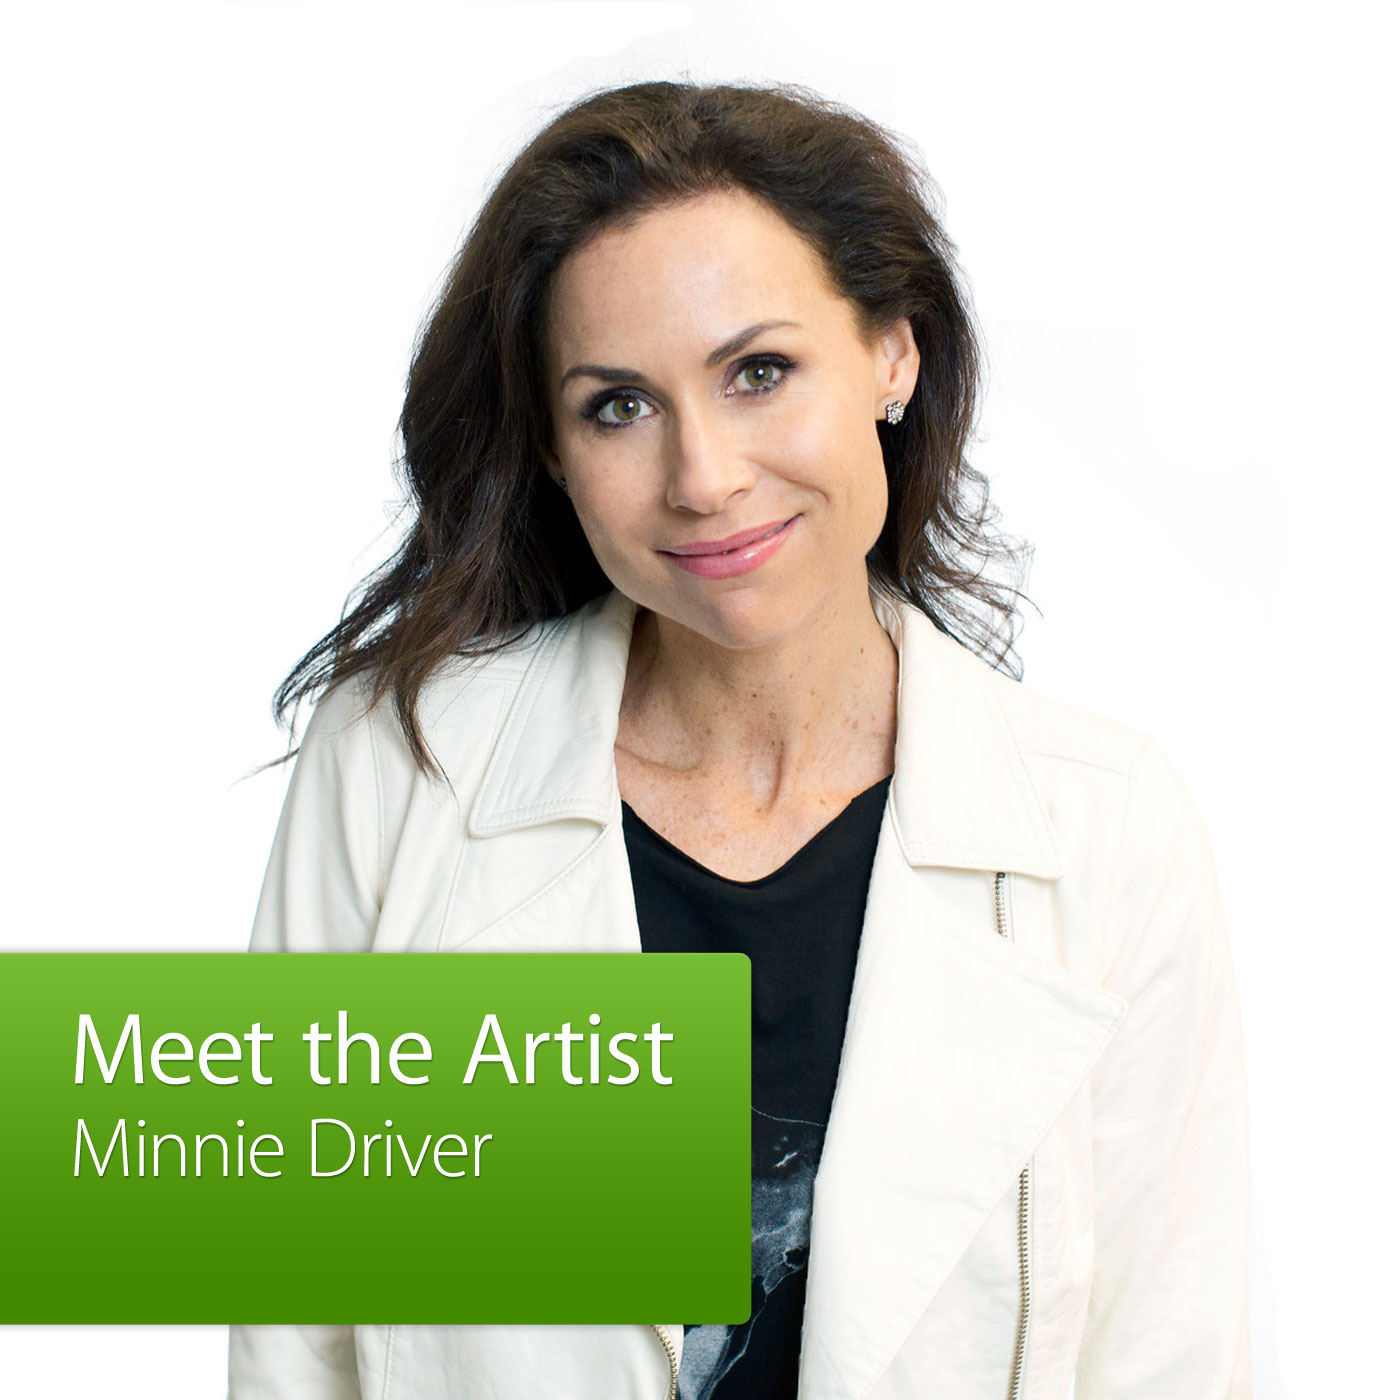 Minnie Driver: Meet the Artist